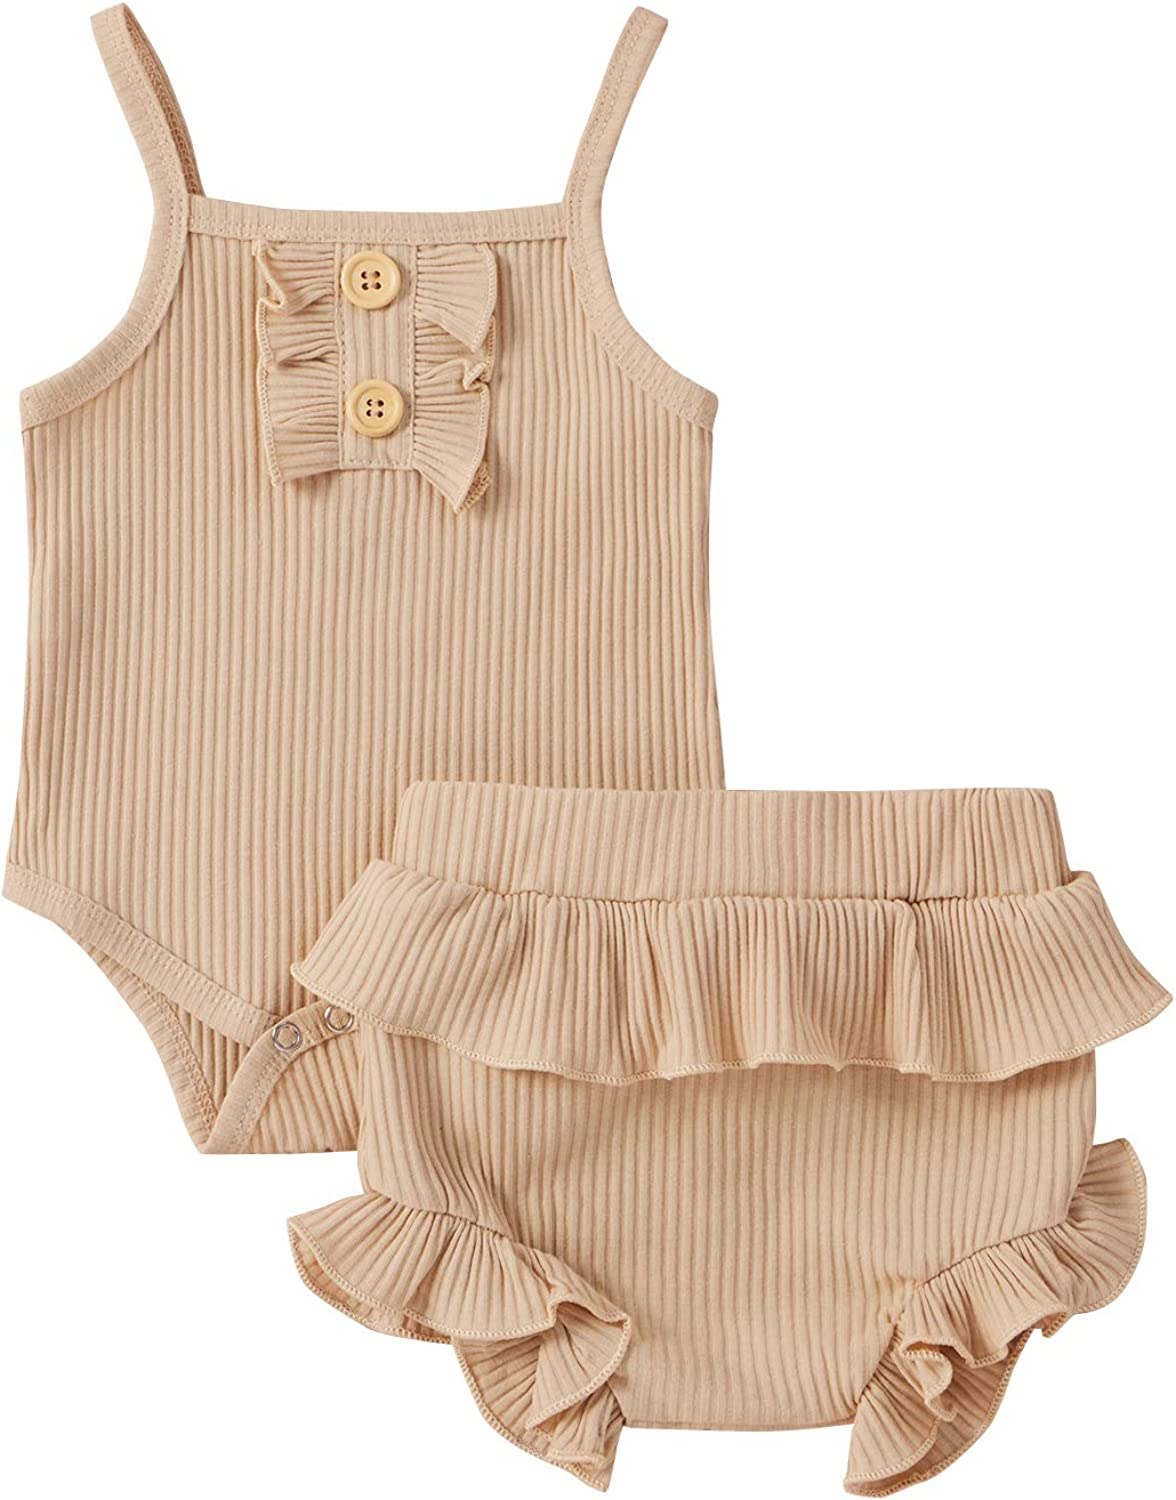 Baby Girl Clothes Max Max 69% OFF 40% OFF Flare Summer Rompe Sleeve Outfits Ruffle Short